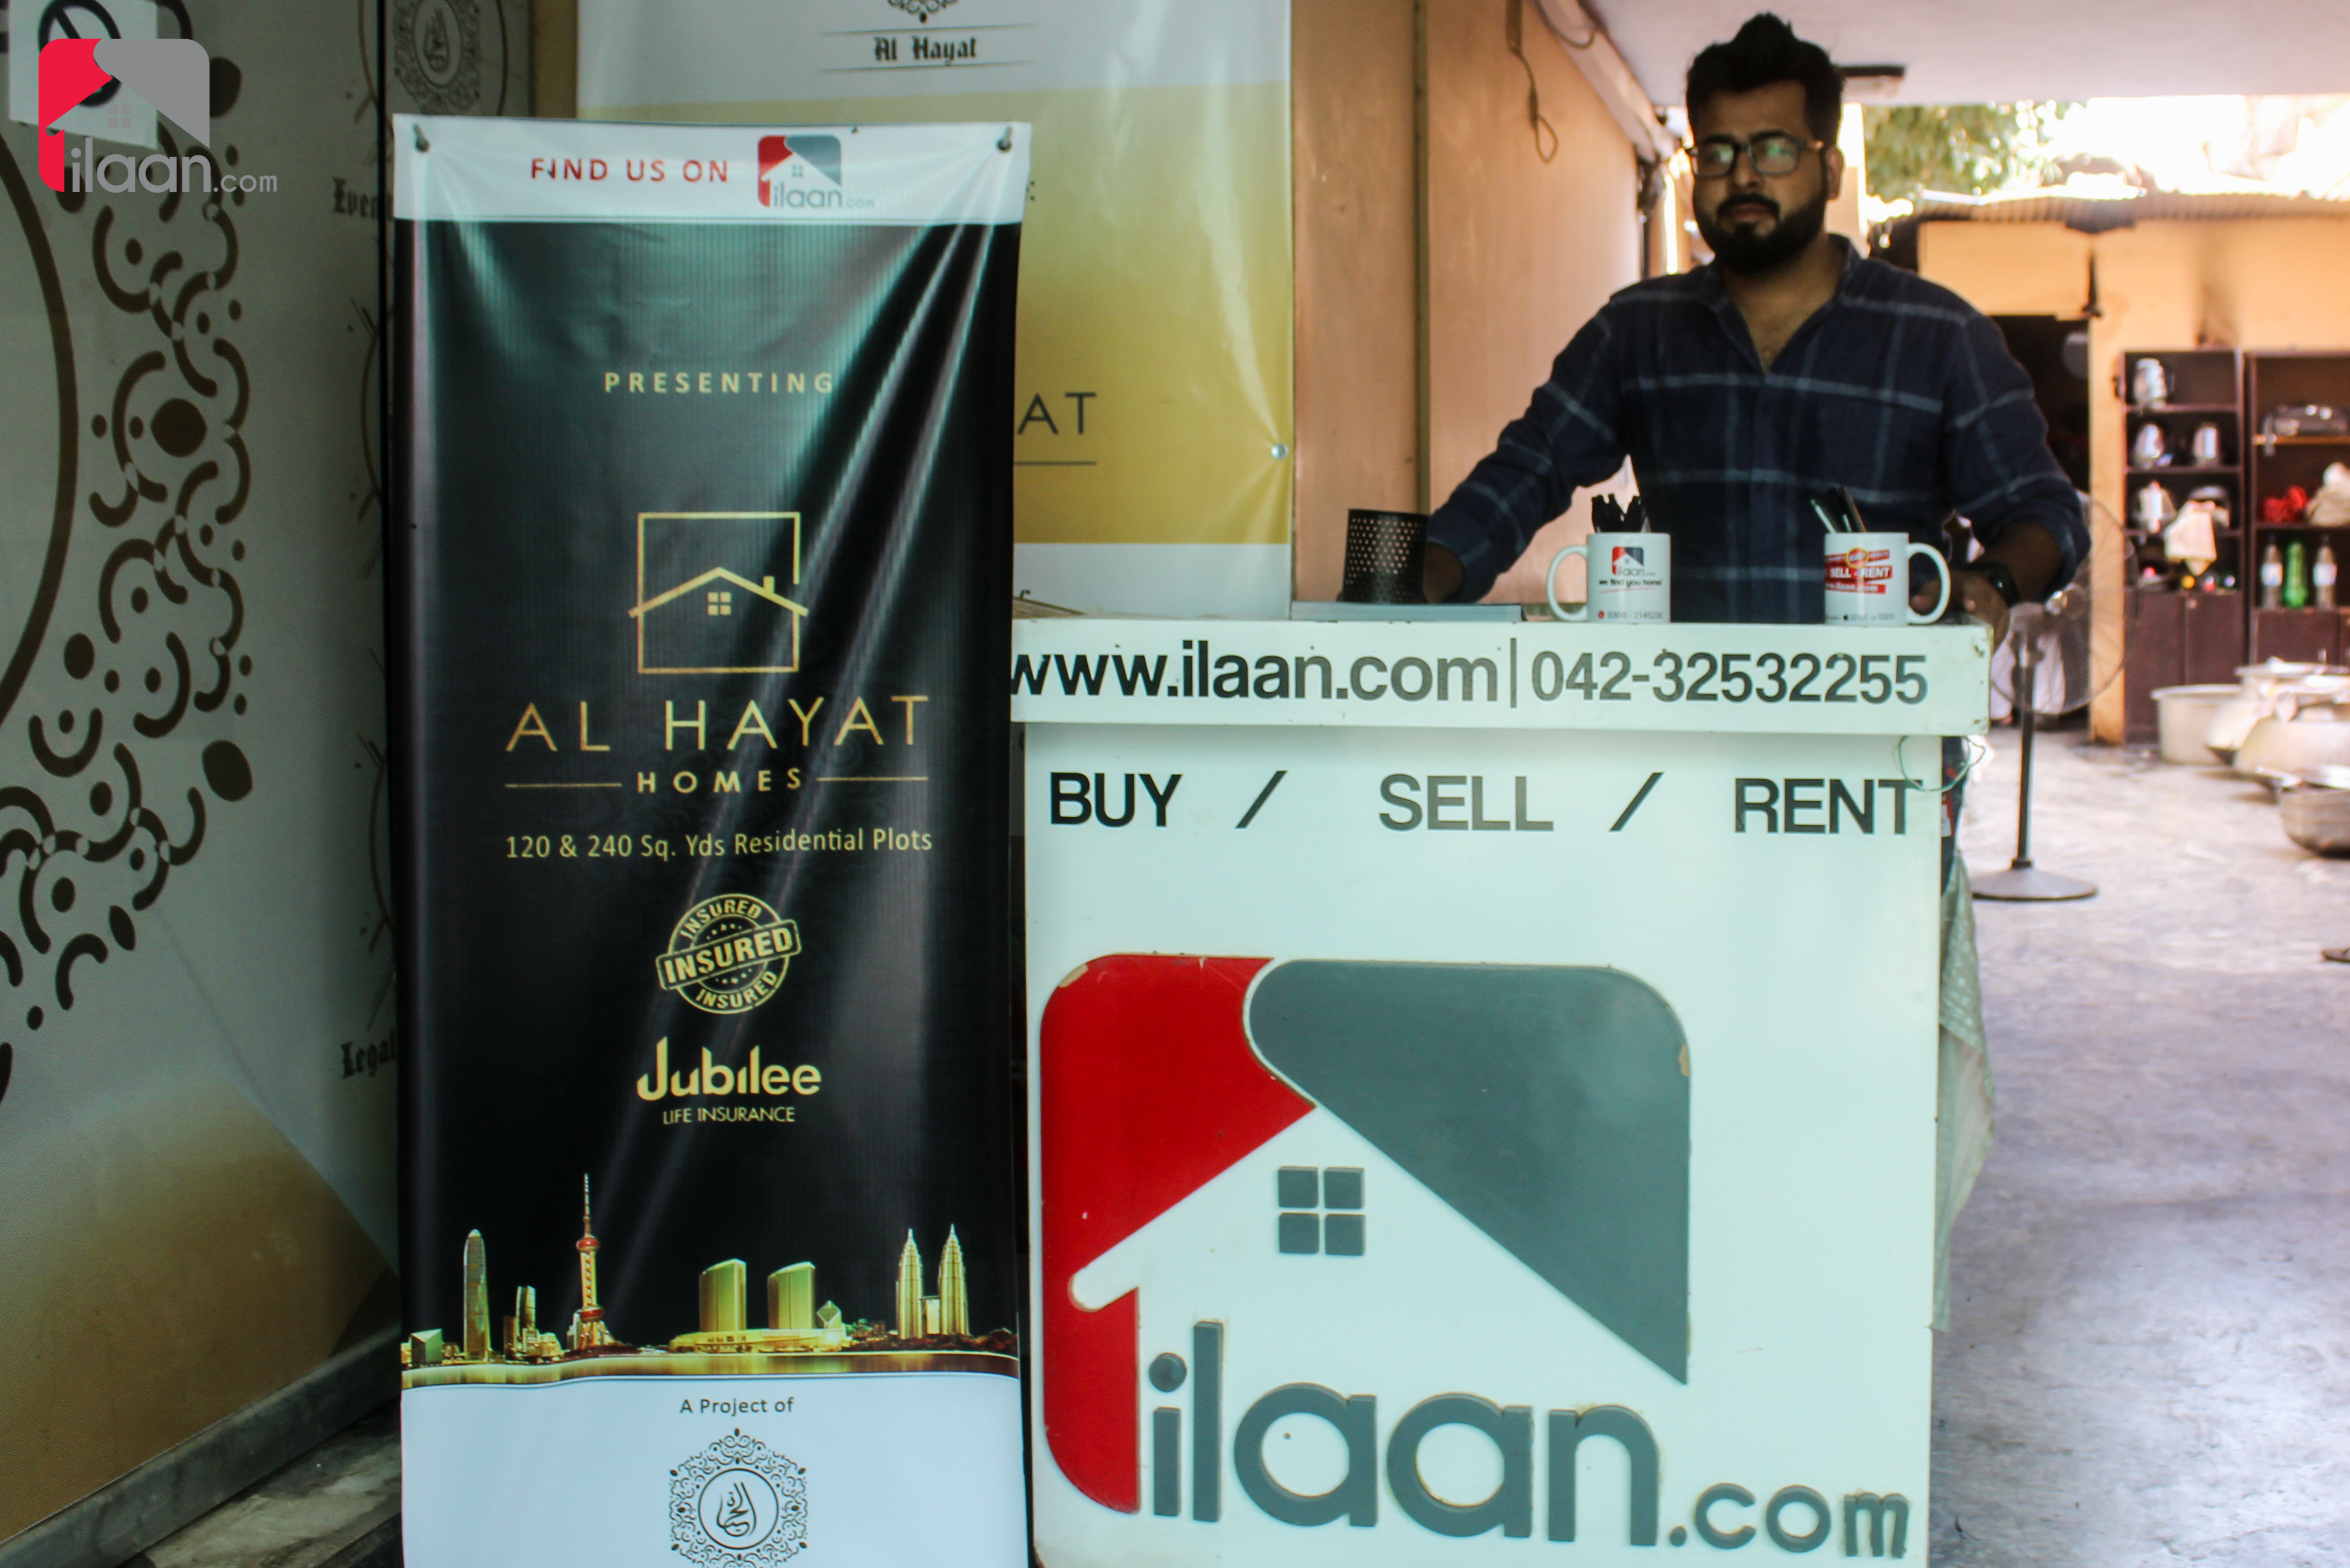 Al-Hayat Homes Launched in Karachi with a Grand Launching Ceremony